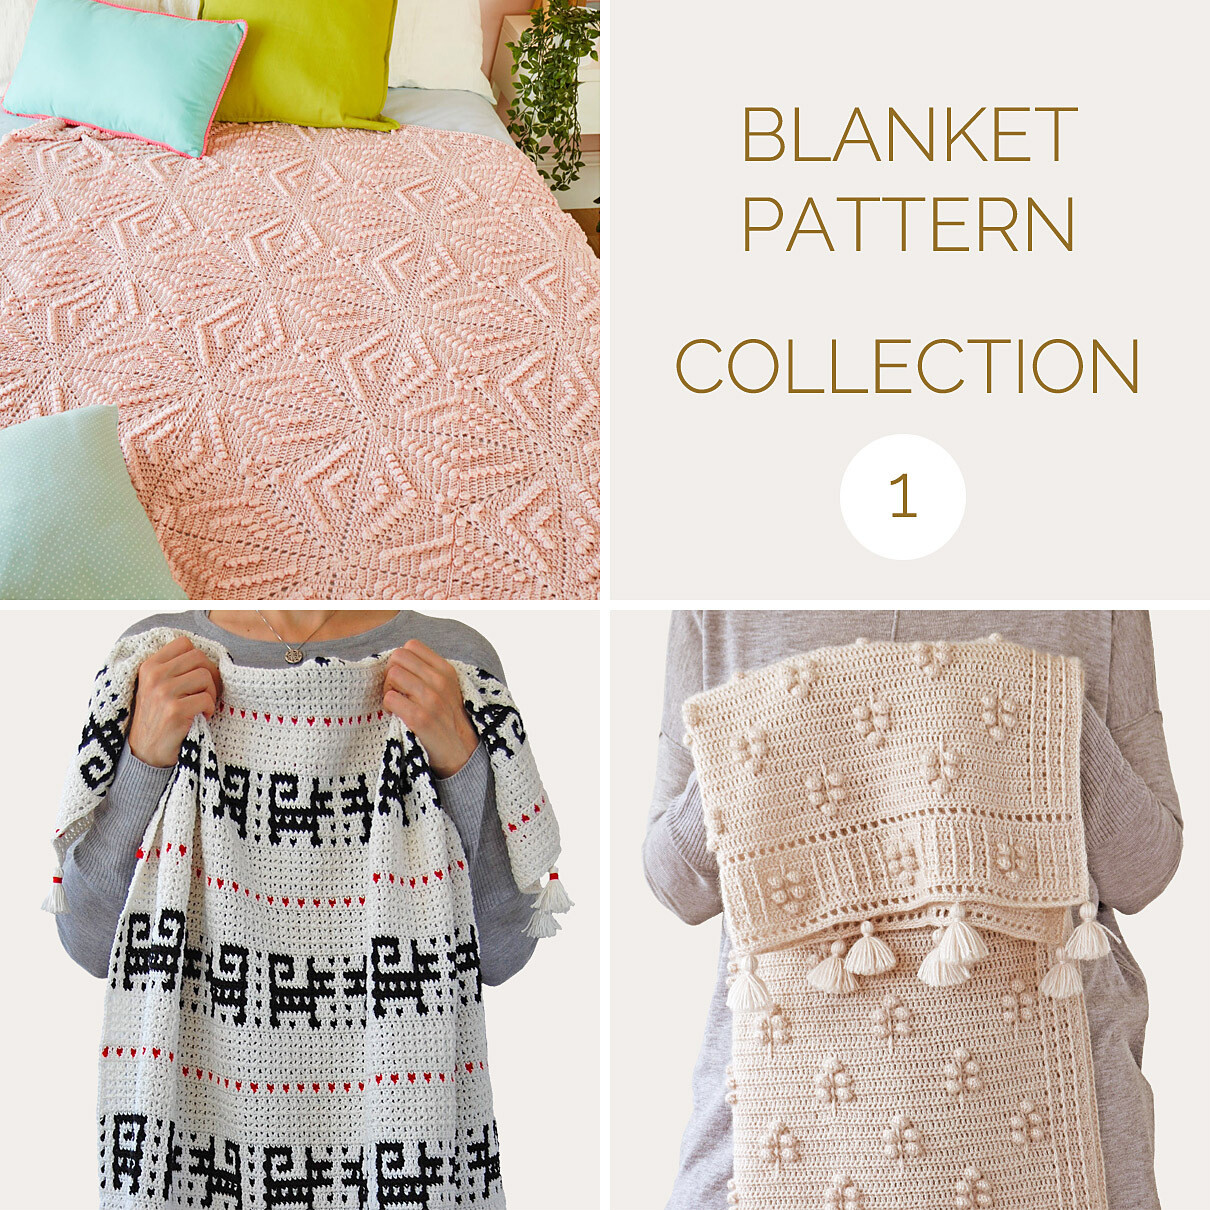 CROCHET BLANKET PATTERN COLLECTION 1